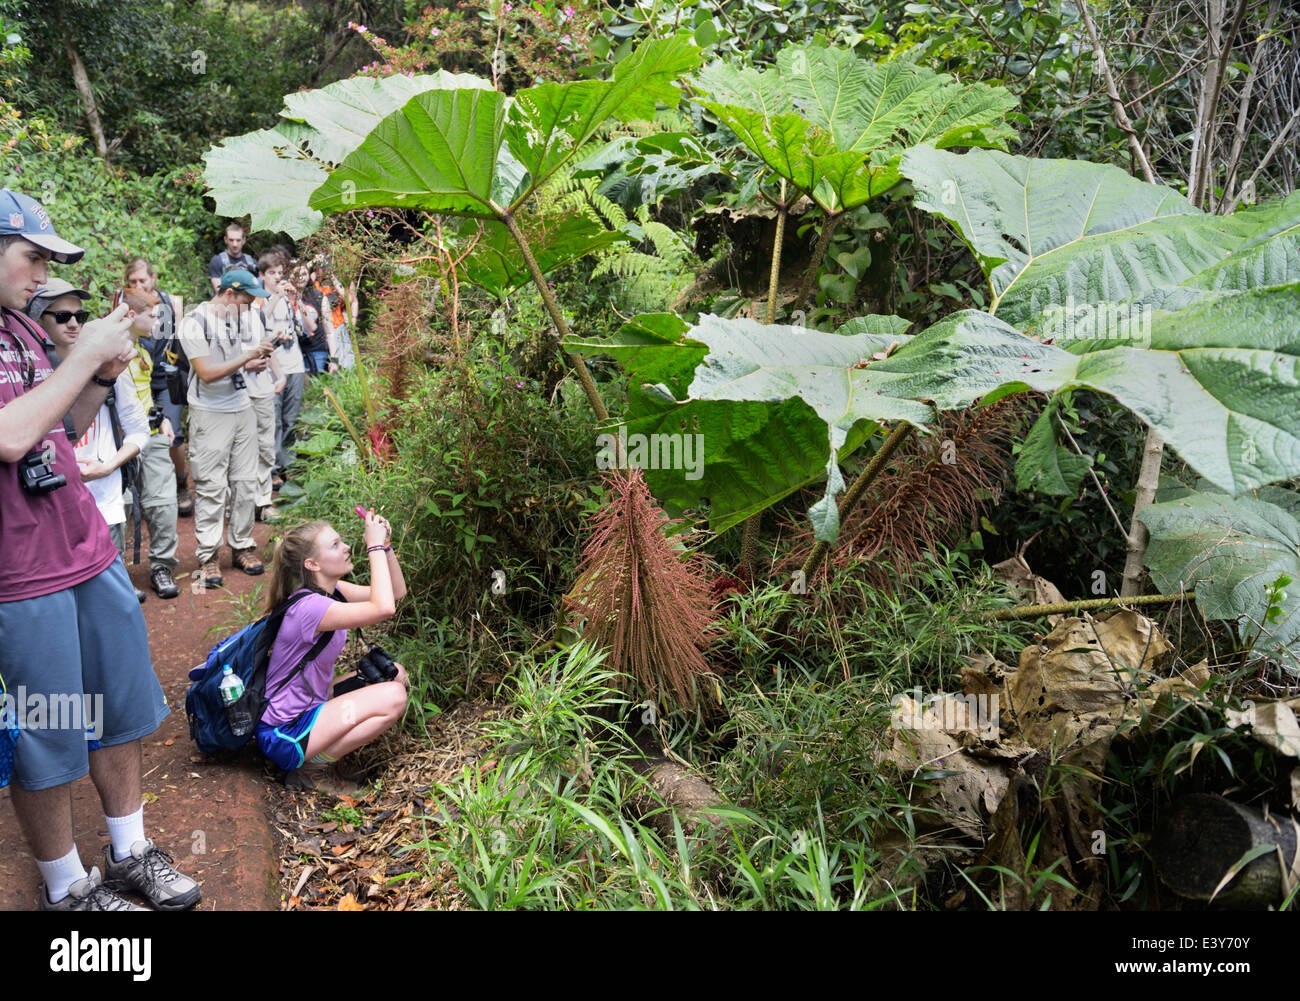 Students photographing poor man's umbrella, Gunnera insignis, in cloudforest, Poas National Park - Stock Image